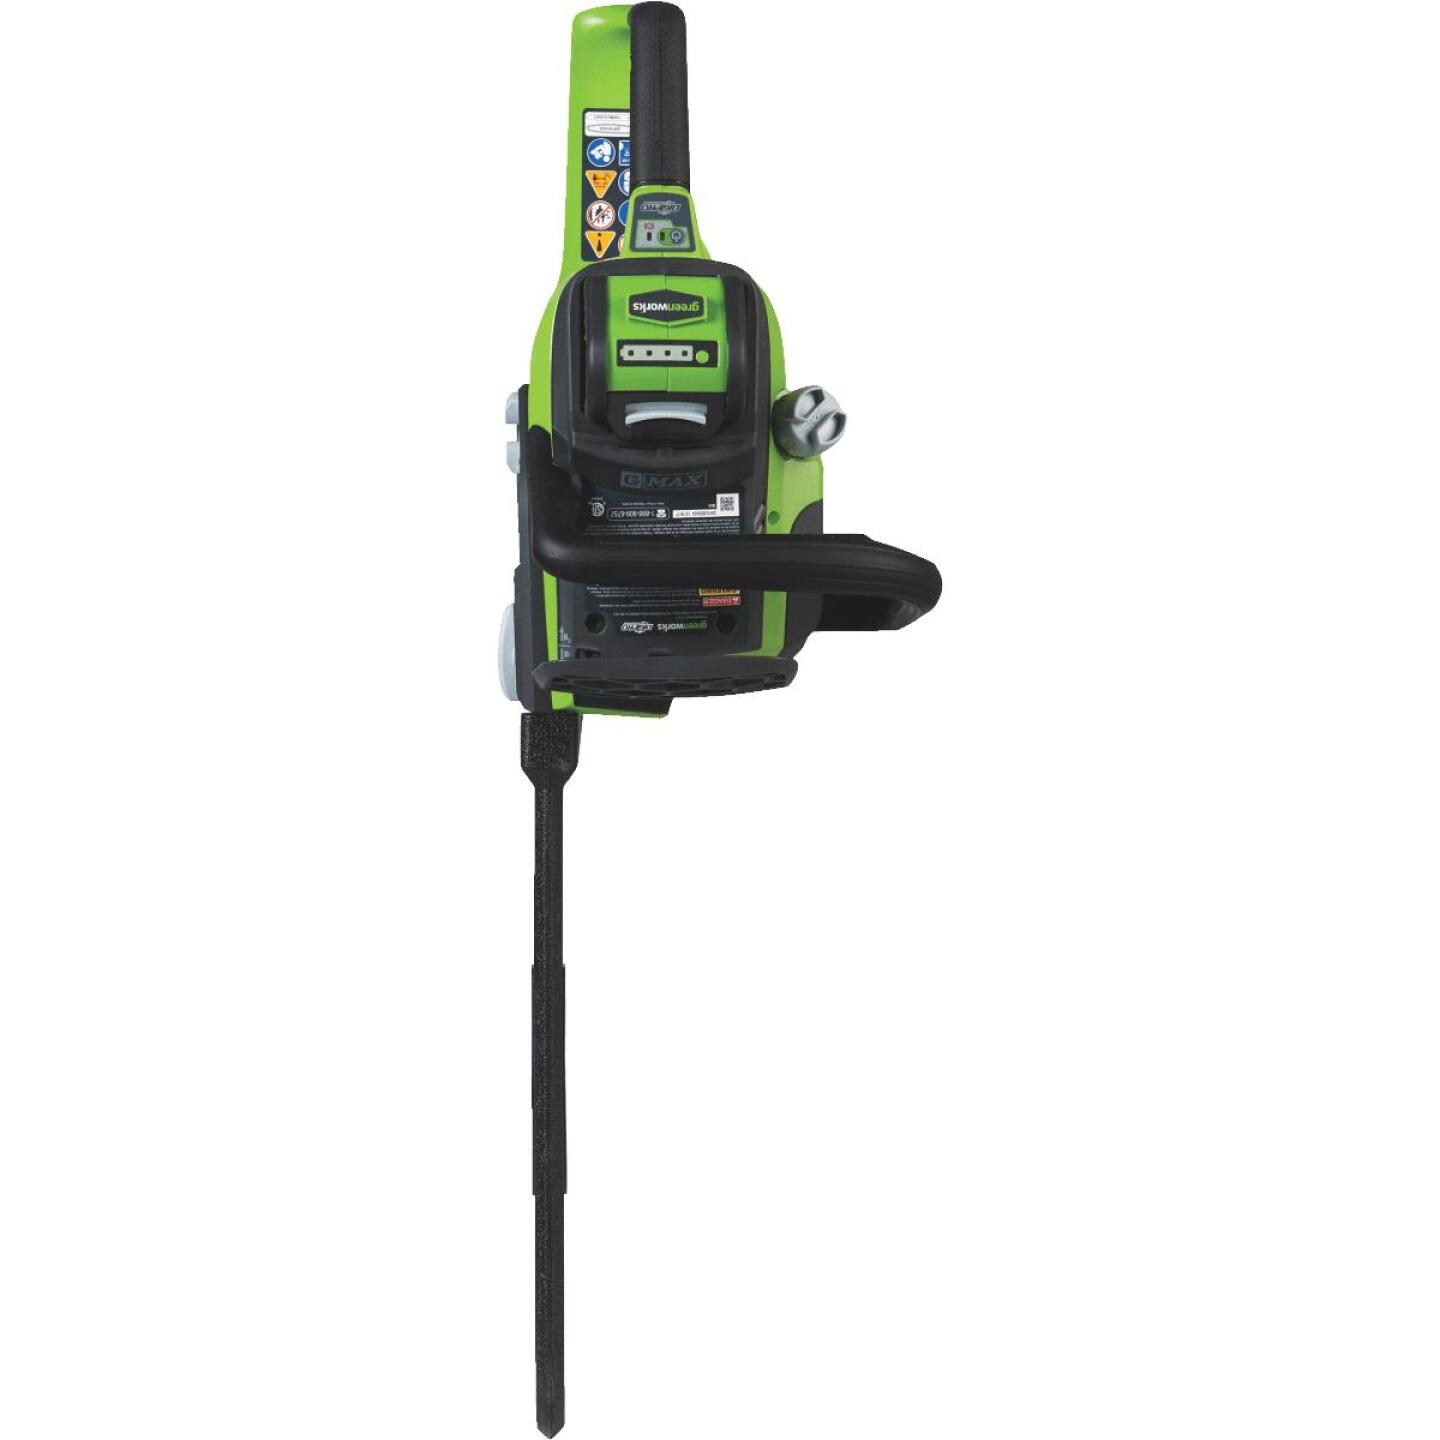 Greenworks G-MAX 16 In. 40V Lithium Ion Brushless Cordless Chainsaw Image 4